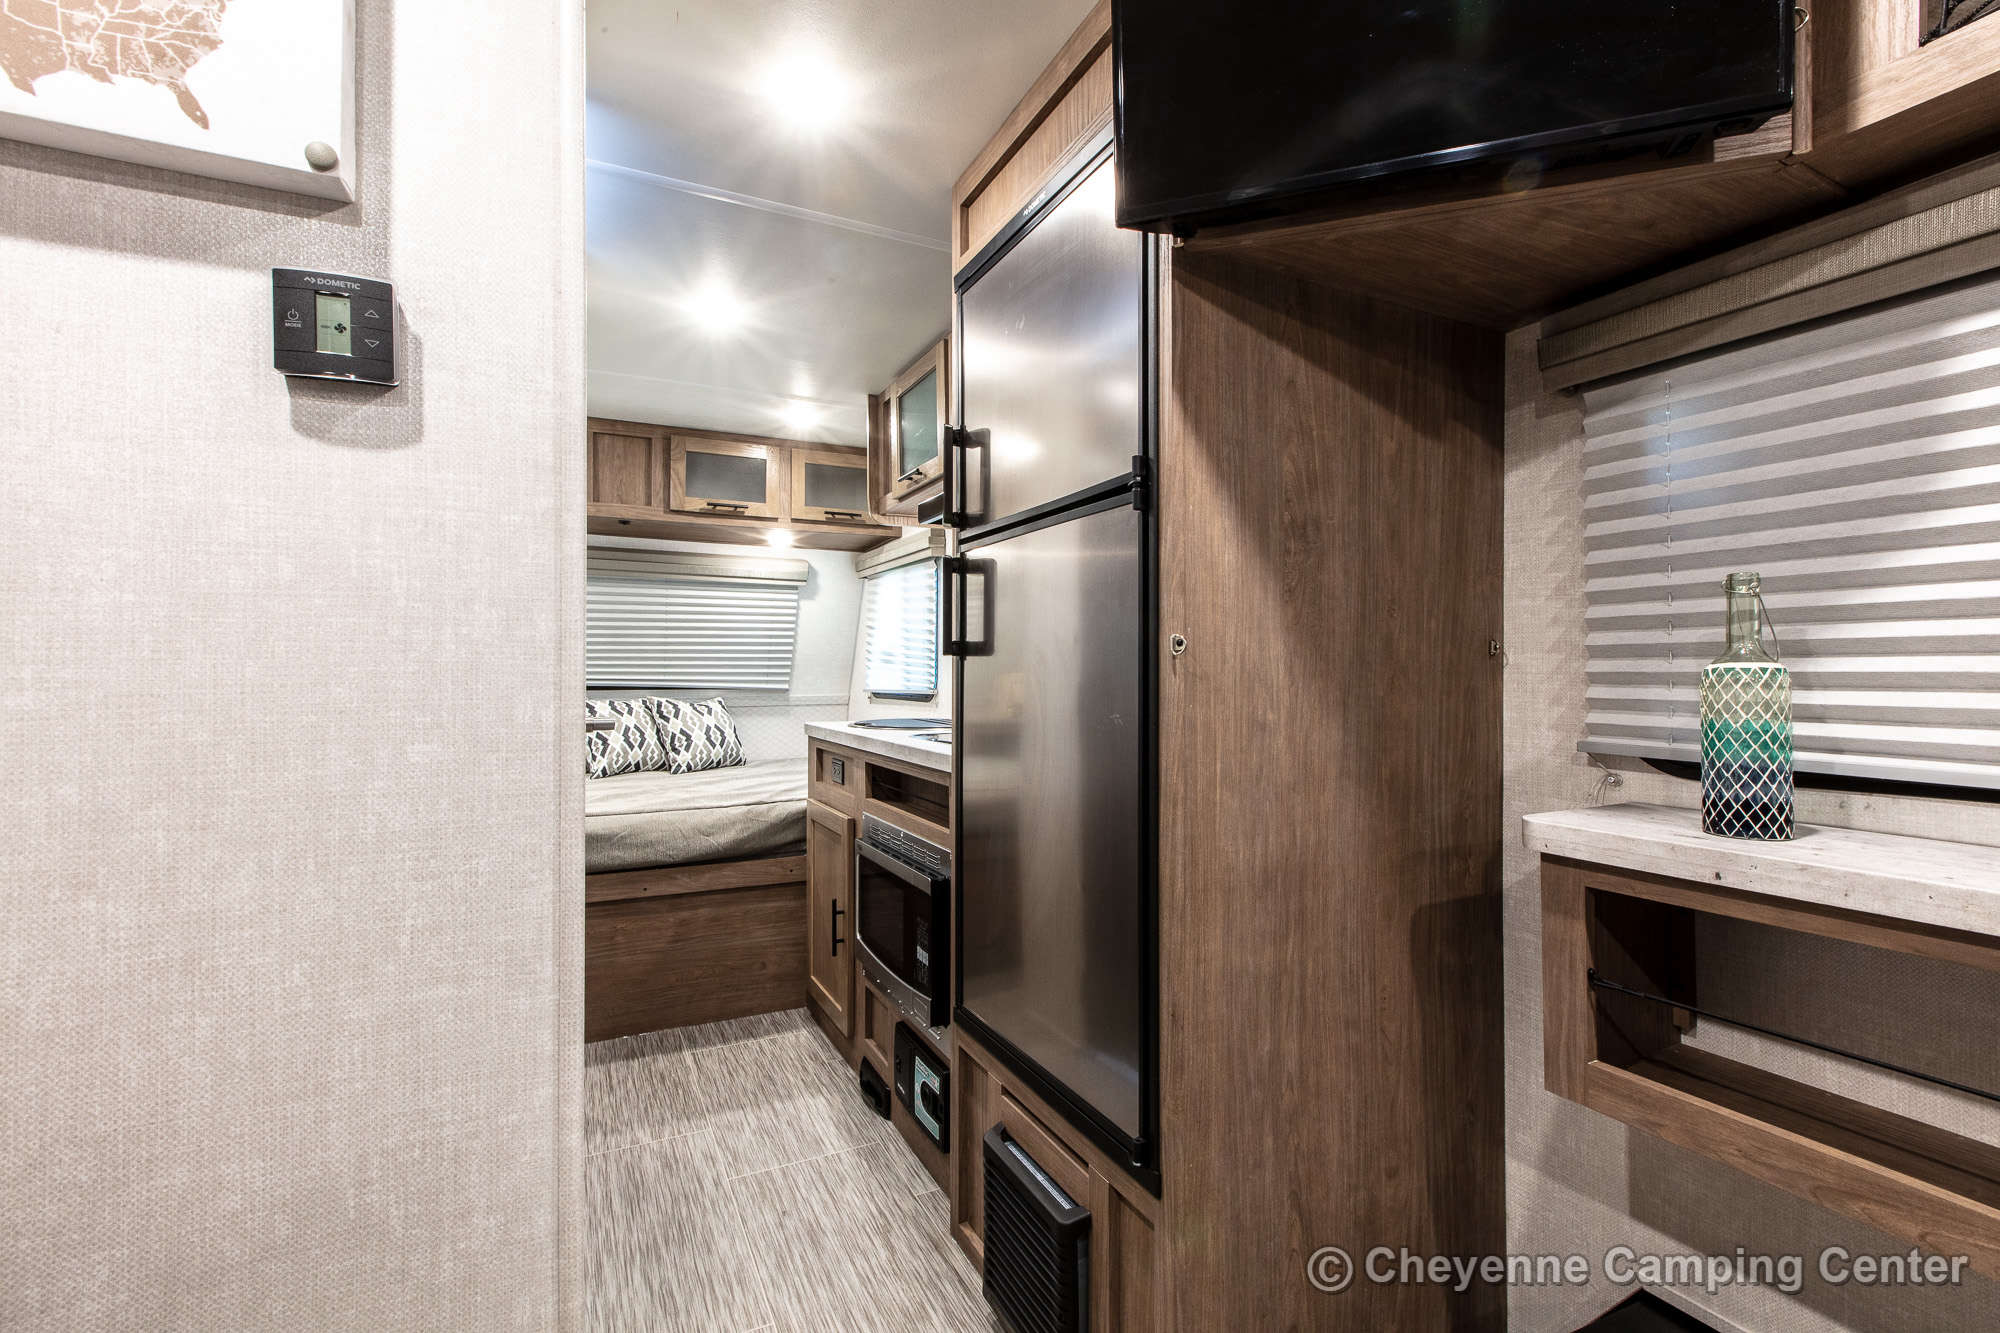 2021 Forest River No Boundaries 19.1 Toy Hauler Travel Trailer Interior Image